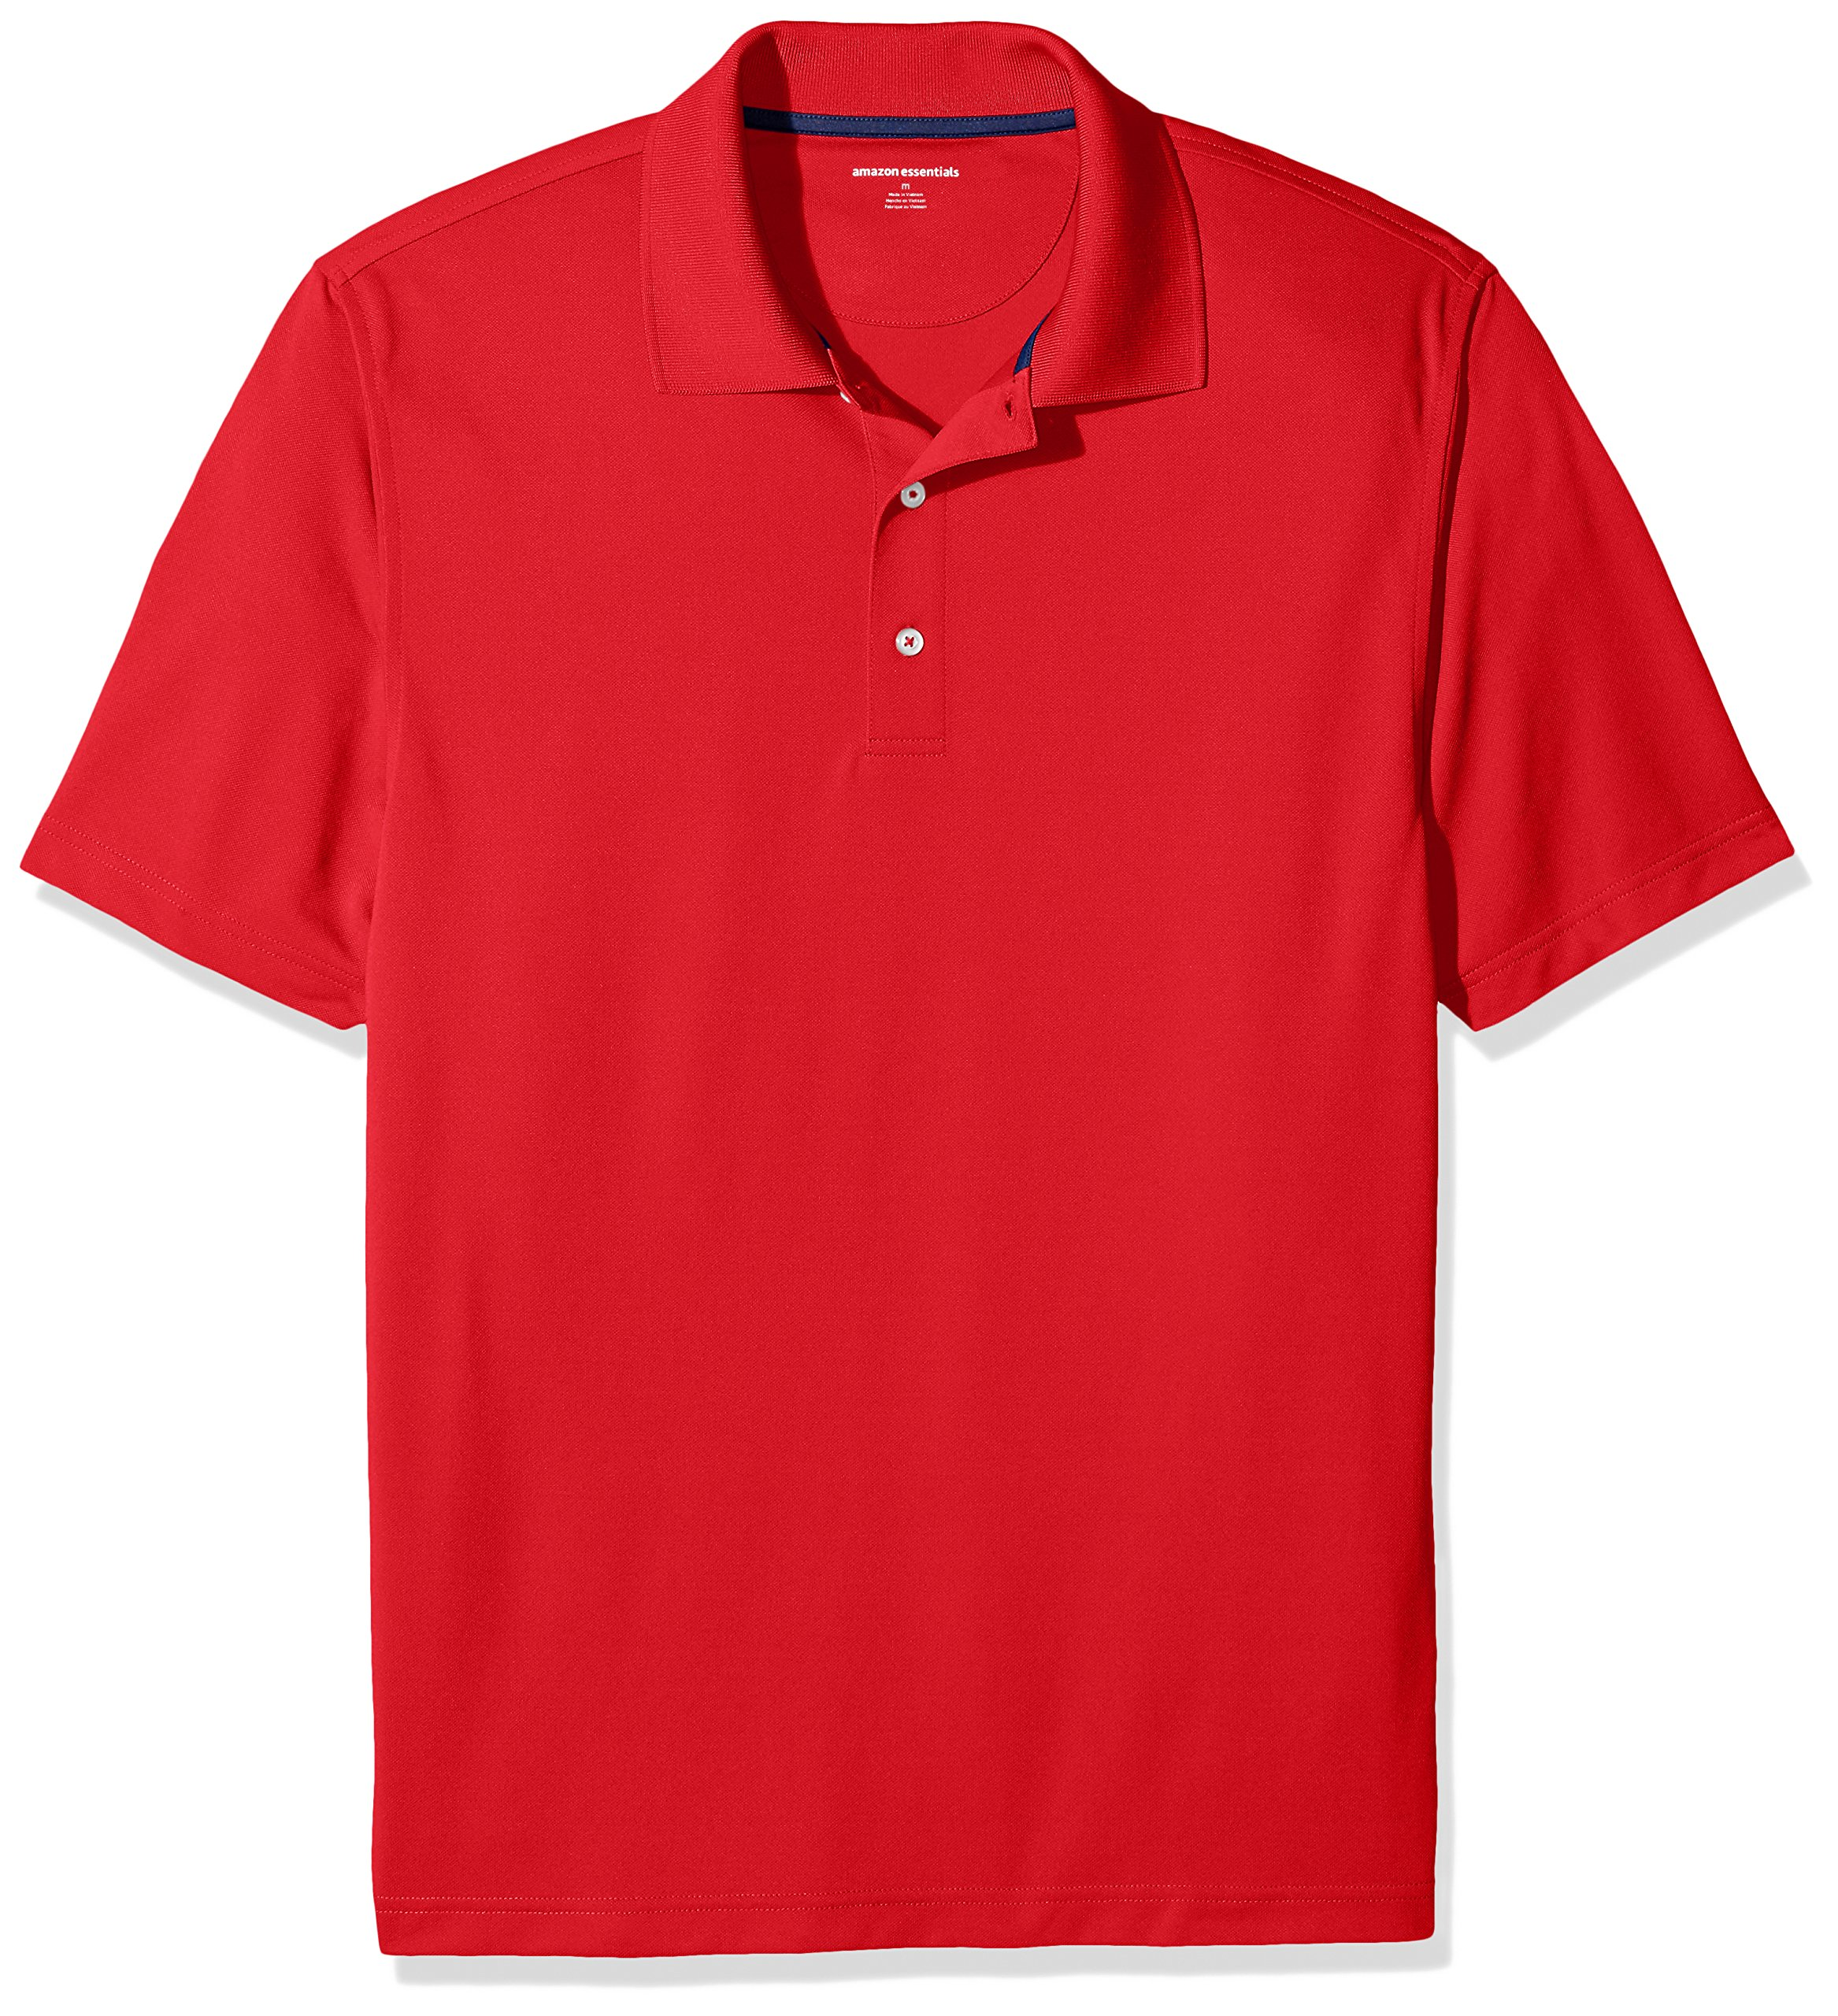 Amazon Essentials Men's Regular-Fit Quick-Dry Golf Polo Shirt, Red, Small by Amazon Essentials